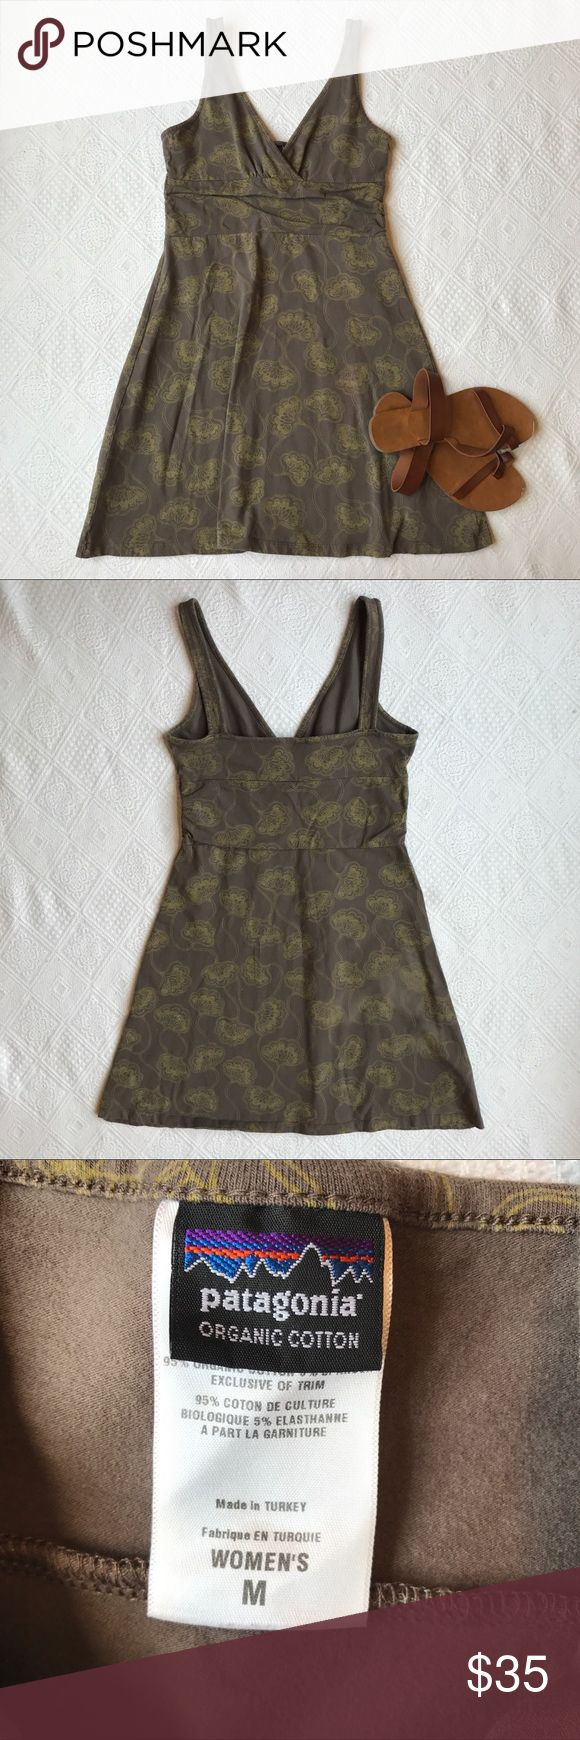 Women's Patagonia dress size Medium No rips, stains, holes. Mind wear, still in great condition! Soft material super comfy. Patagonia Dresses Mini